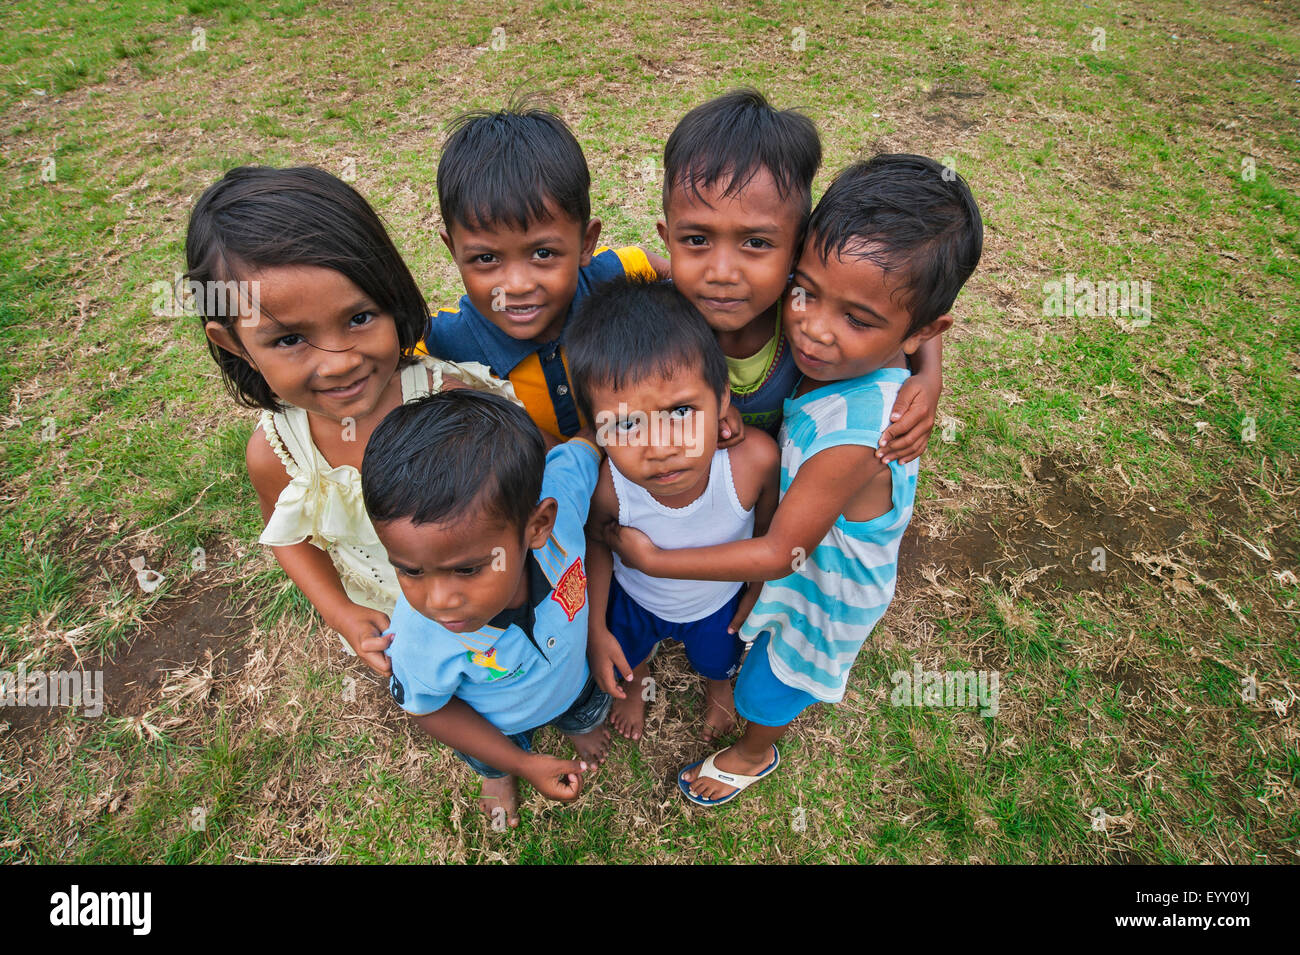 Small children hugging each other, Lonthor, Banda, Moluccas, Indonesia Stock Photo